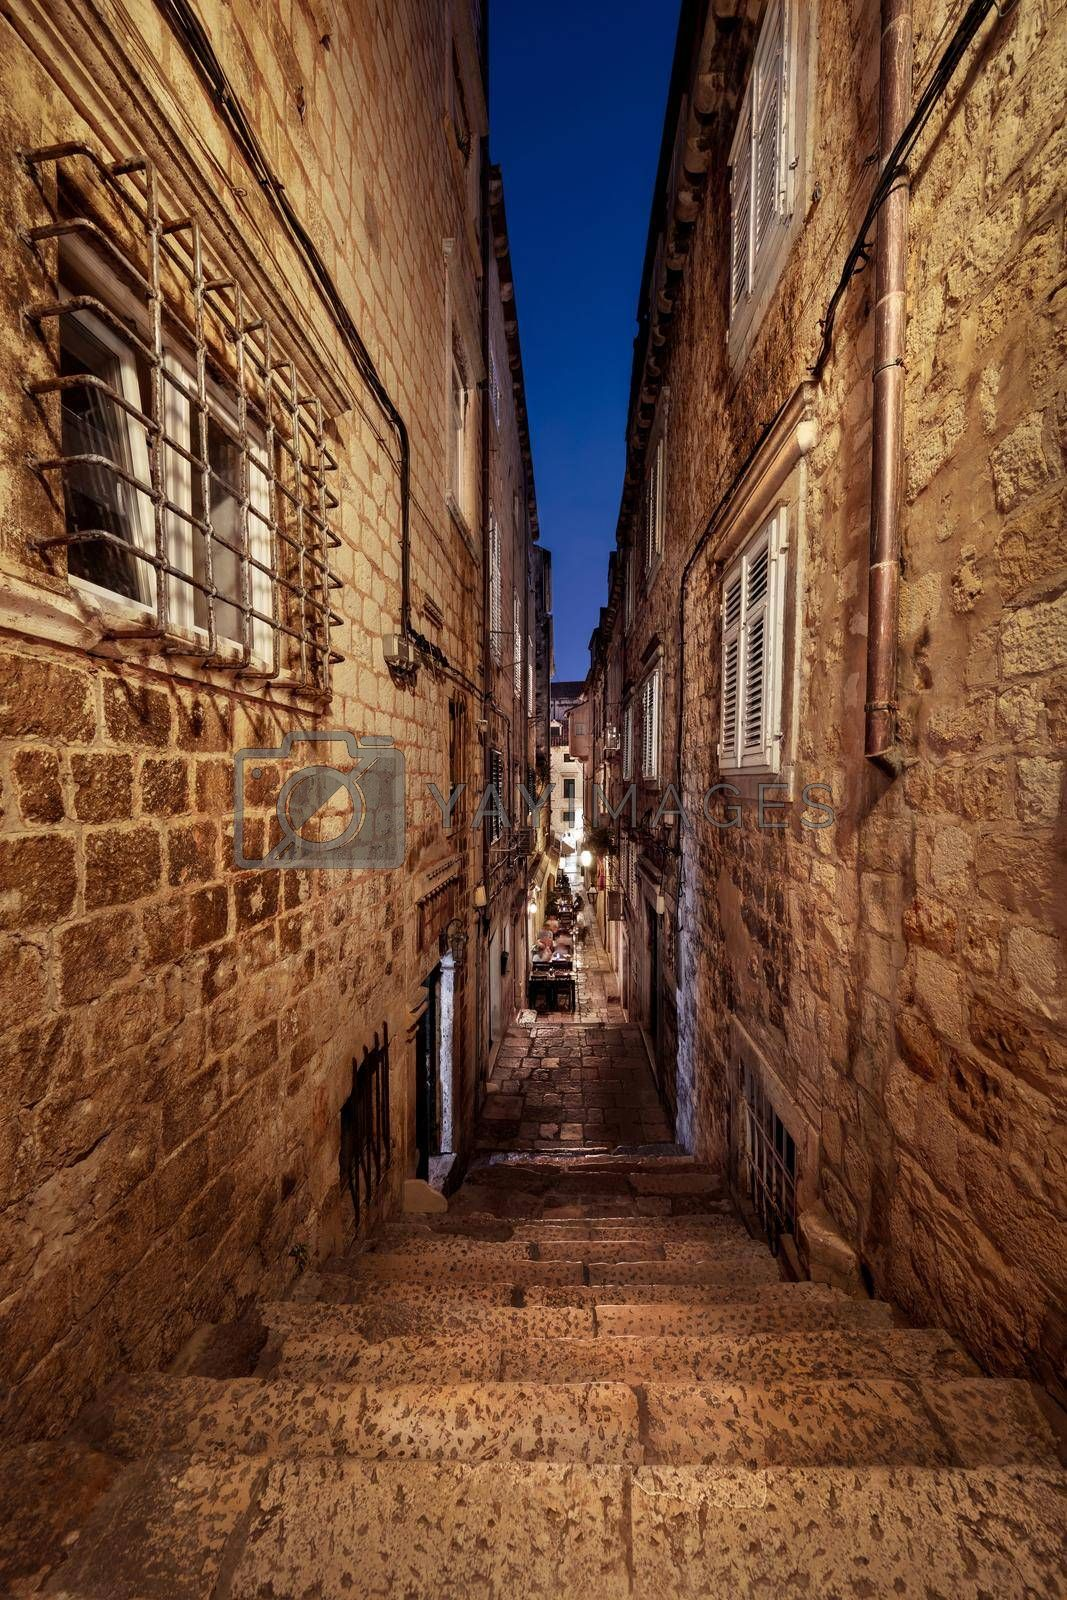 Typical Historical Croatian Street. Venetian Architecture with Stairs Going Down. High Walls Made of Old Bricks. Dubrovnik